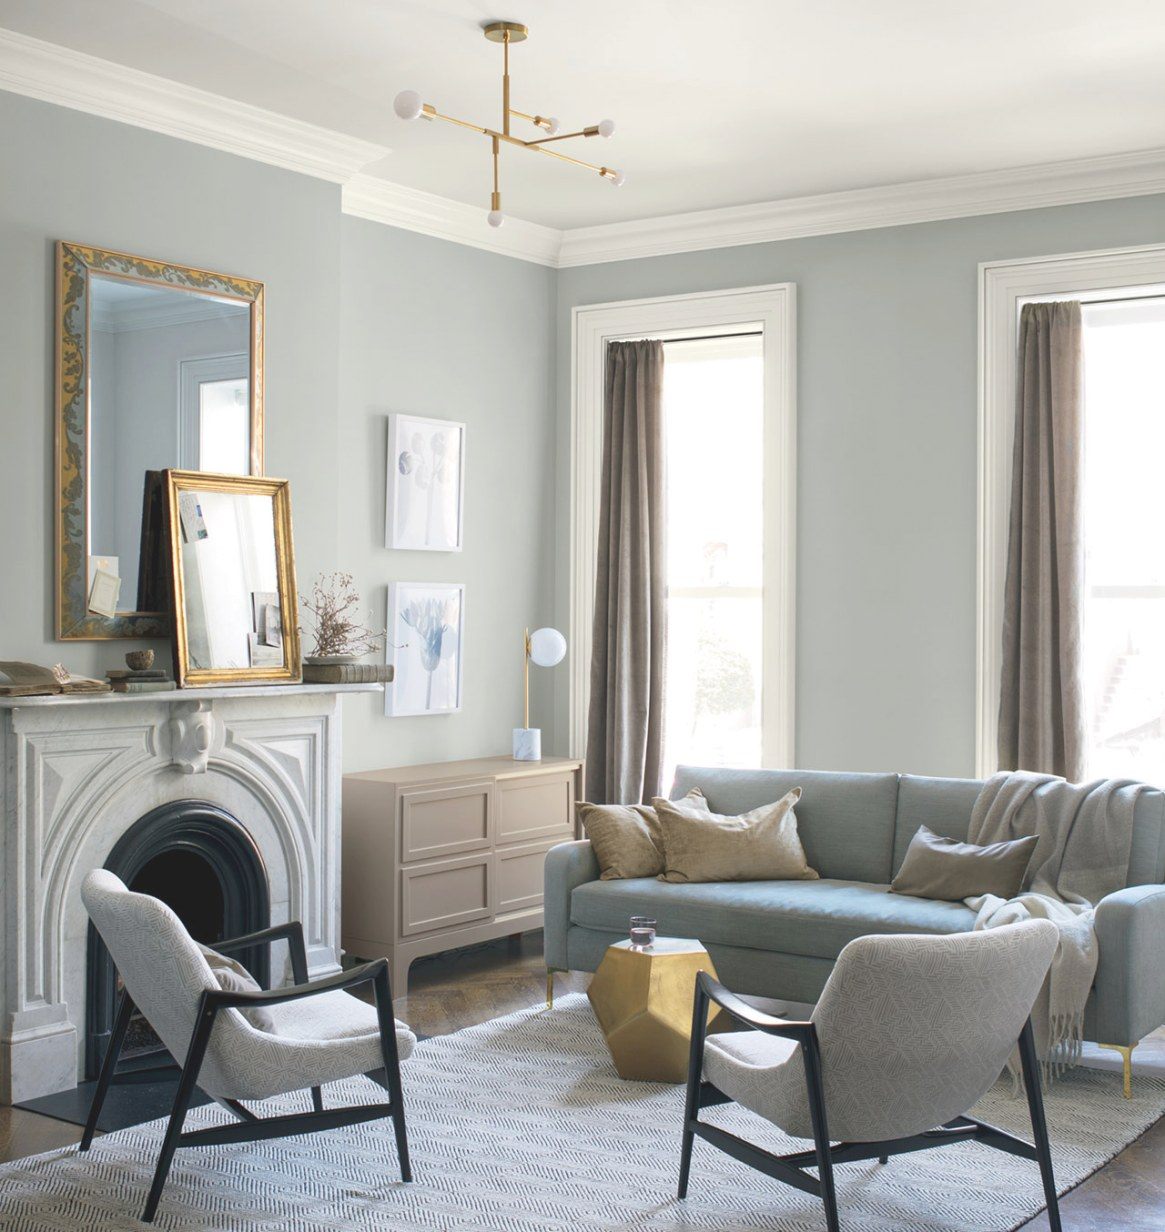 Benjamin Moore's Colour Of The Year 2019 - Chatelaine inside Balboa Mist Benjamin Moore